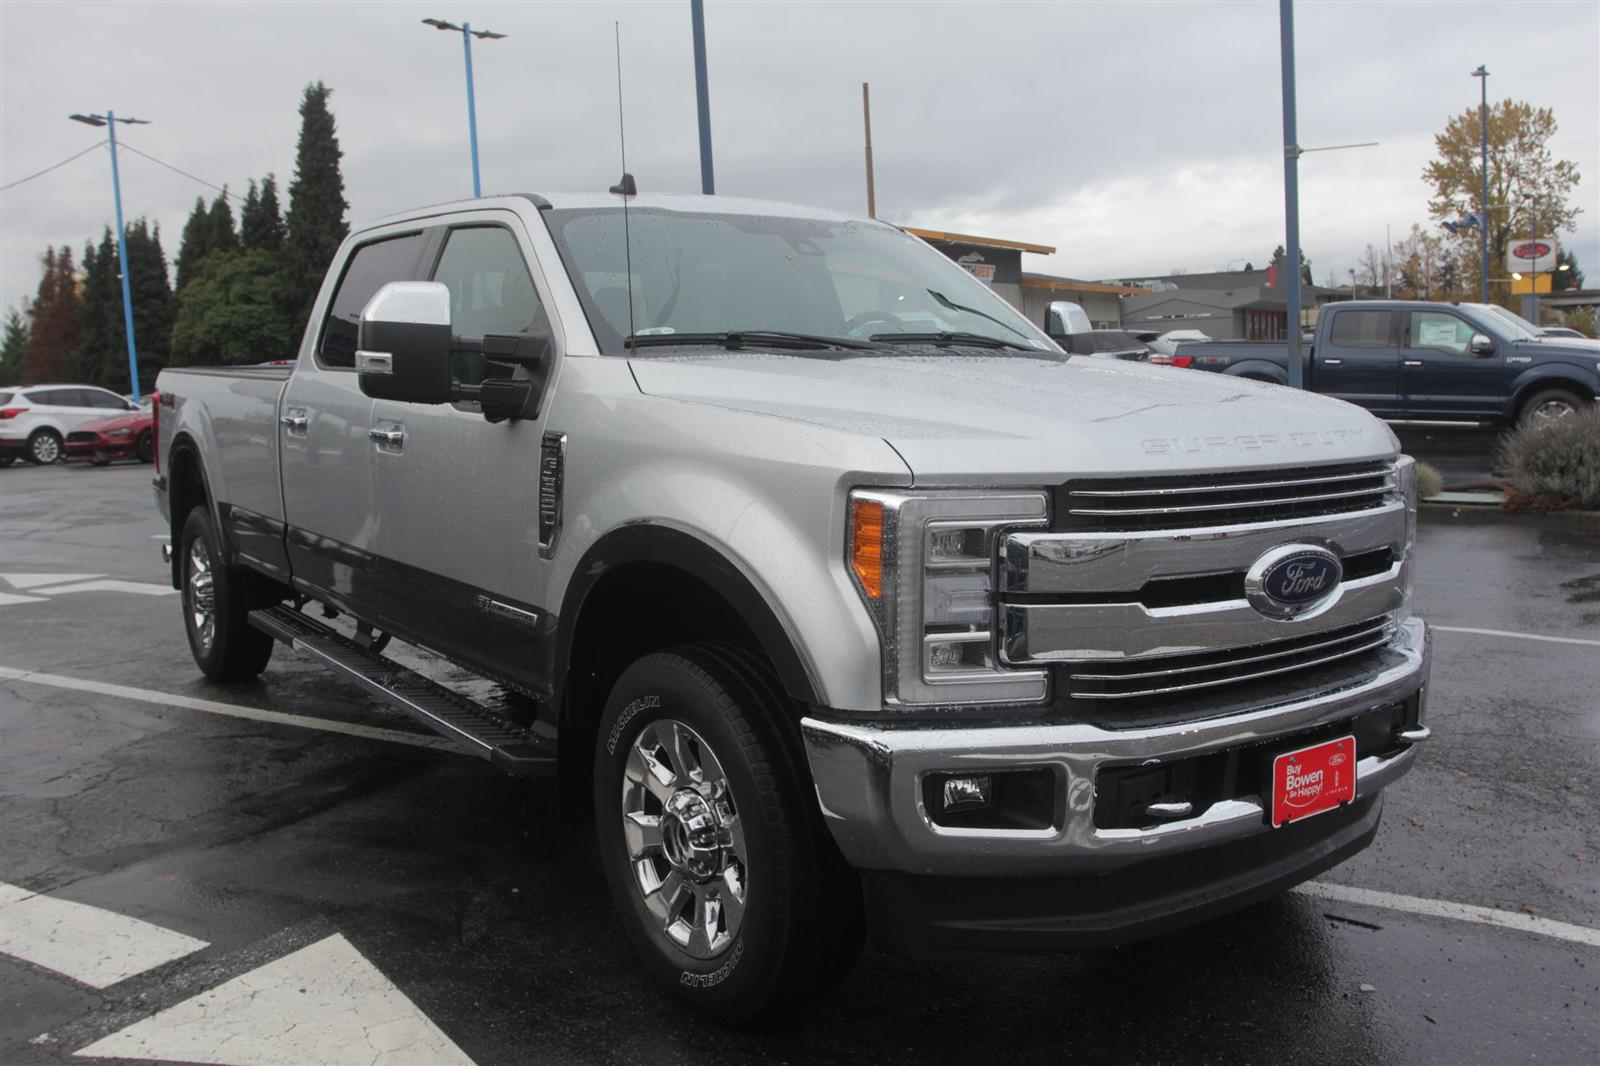 2019 Ford F-350 Crew Cab 4x4, Pickup #E9781A - photo 4